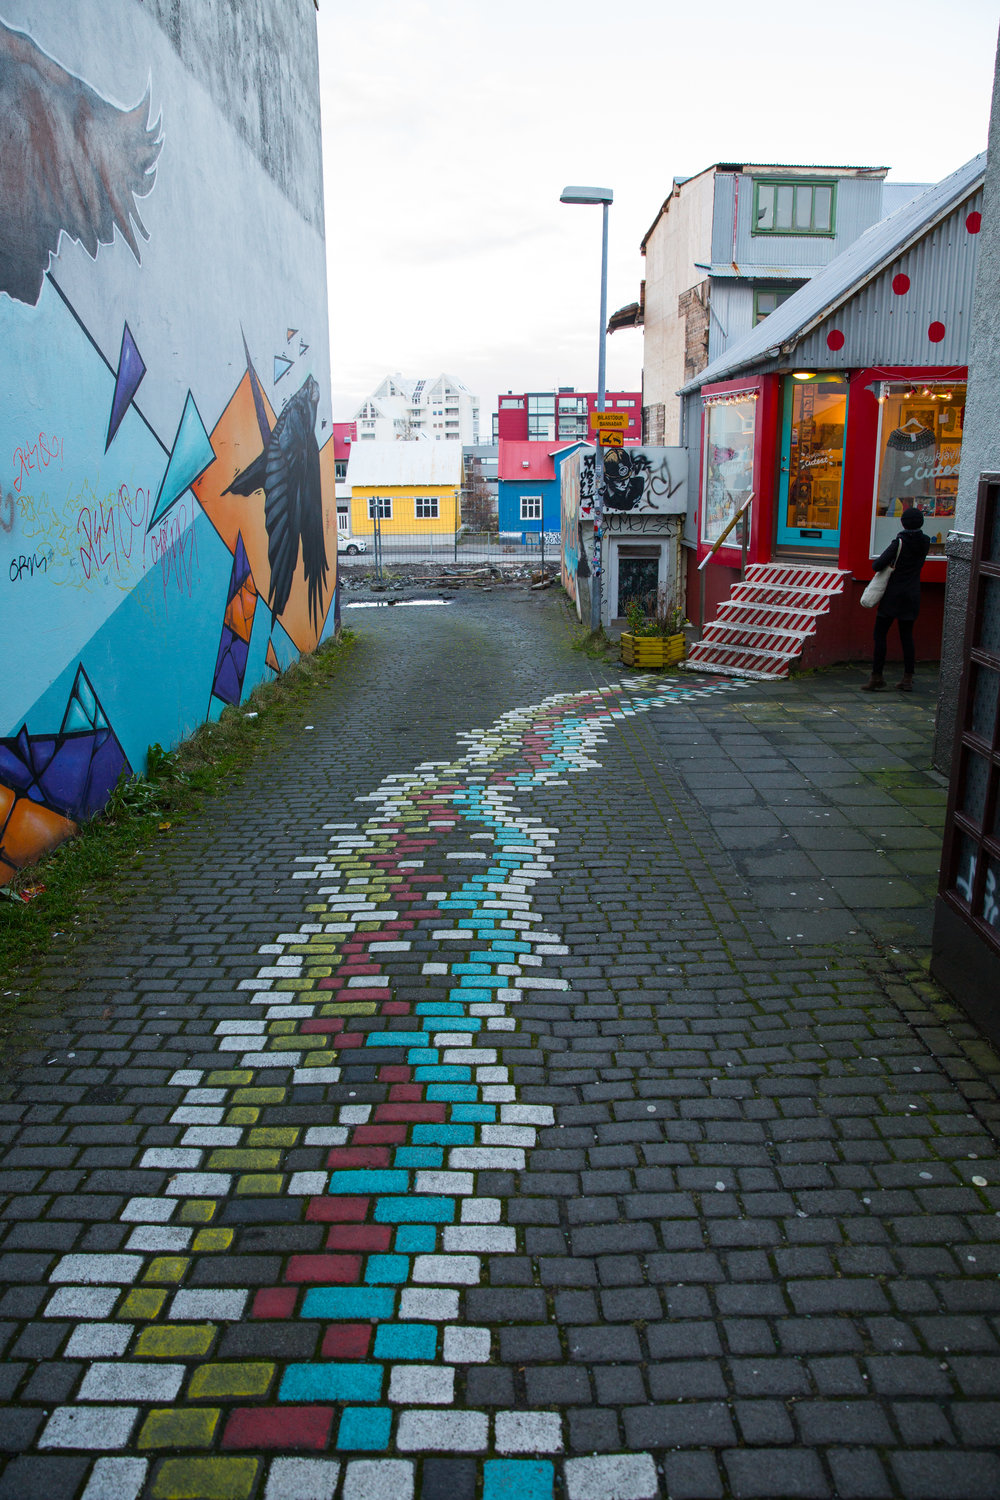 In many ways, the streets and environs of Reykjavik make for a perfect canvas for the bright street art that covers many parts of the city.